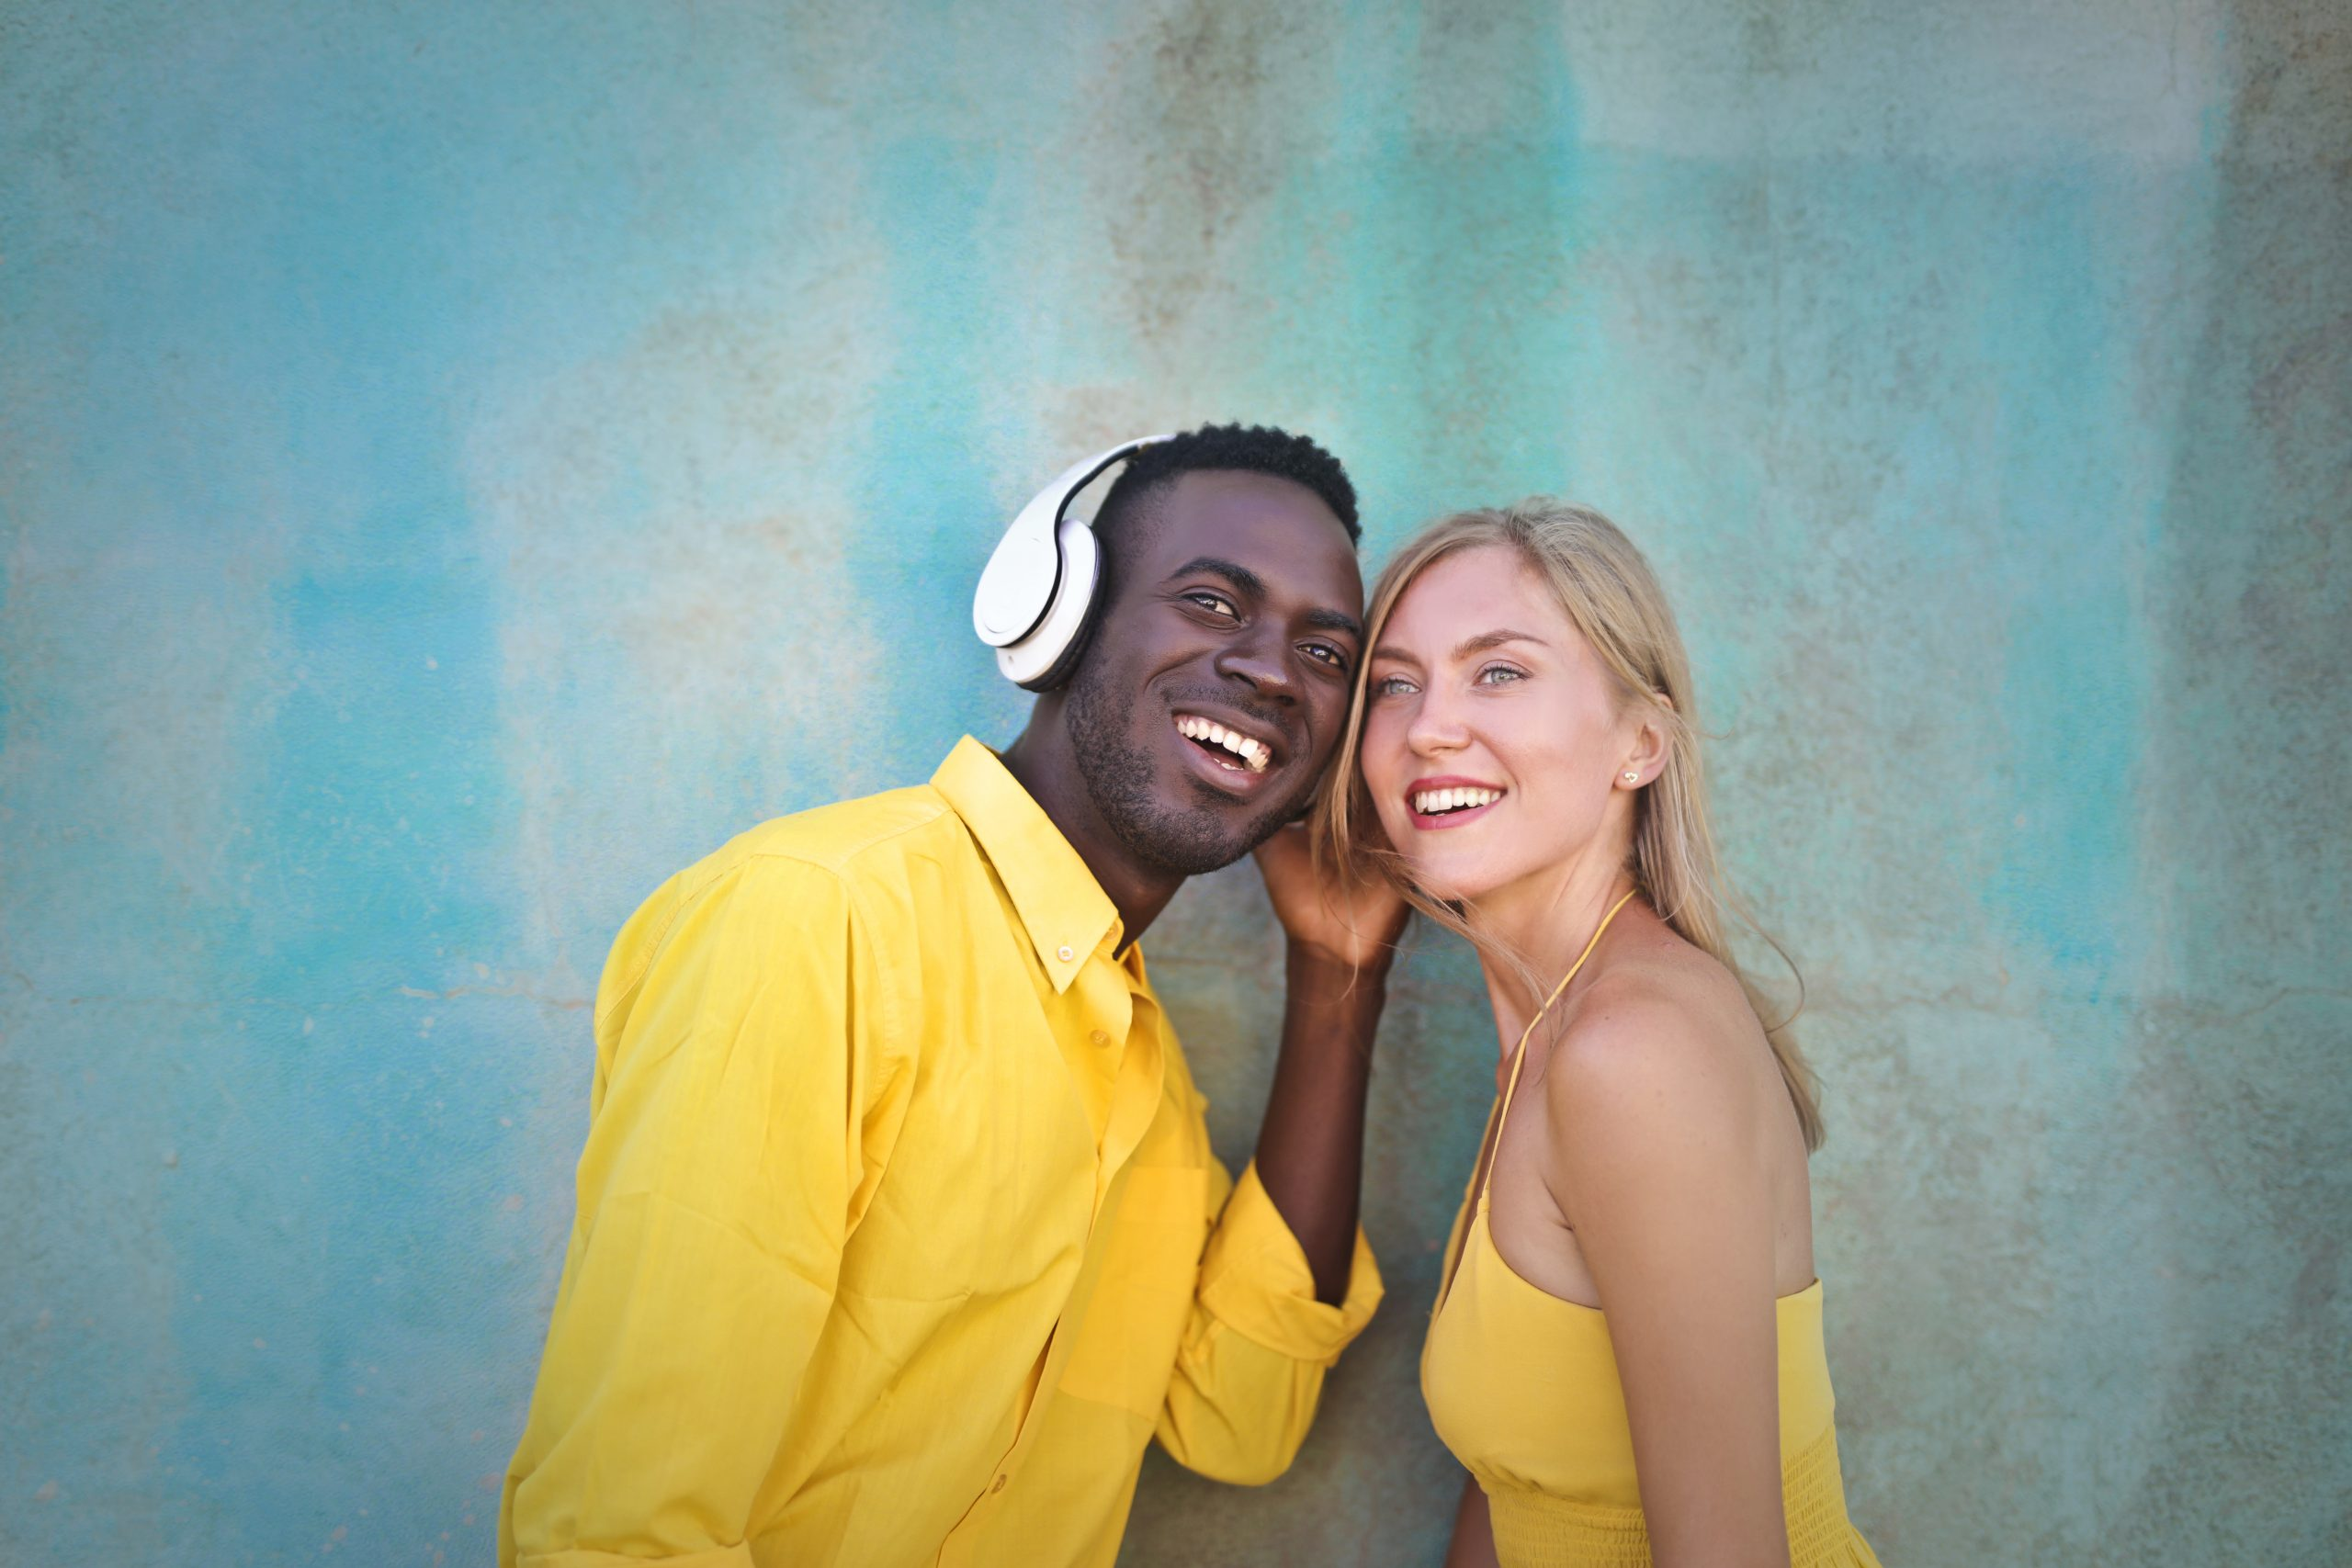 Cheerful diverse couple smiling and looking away